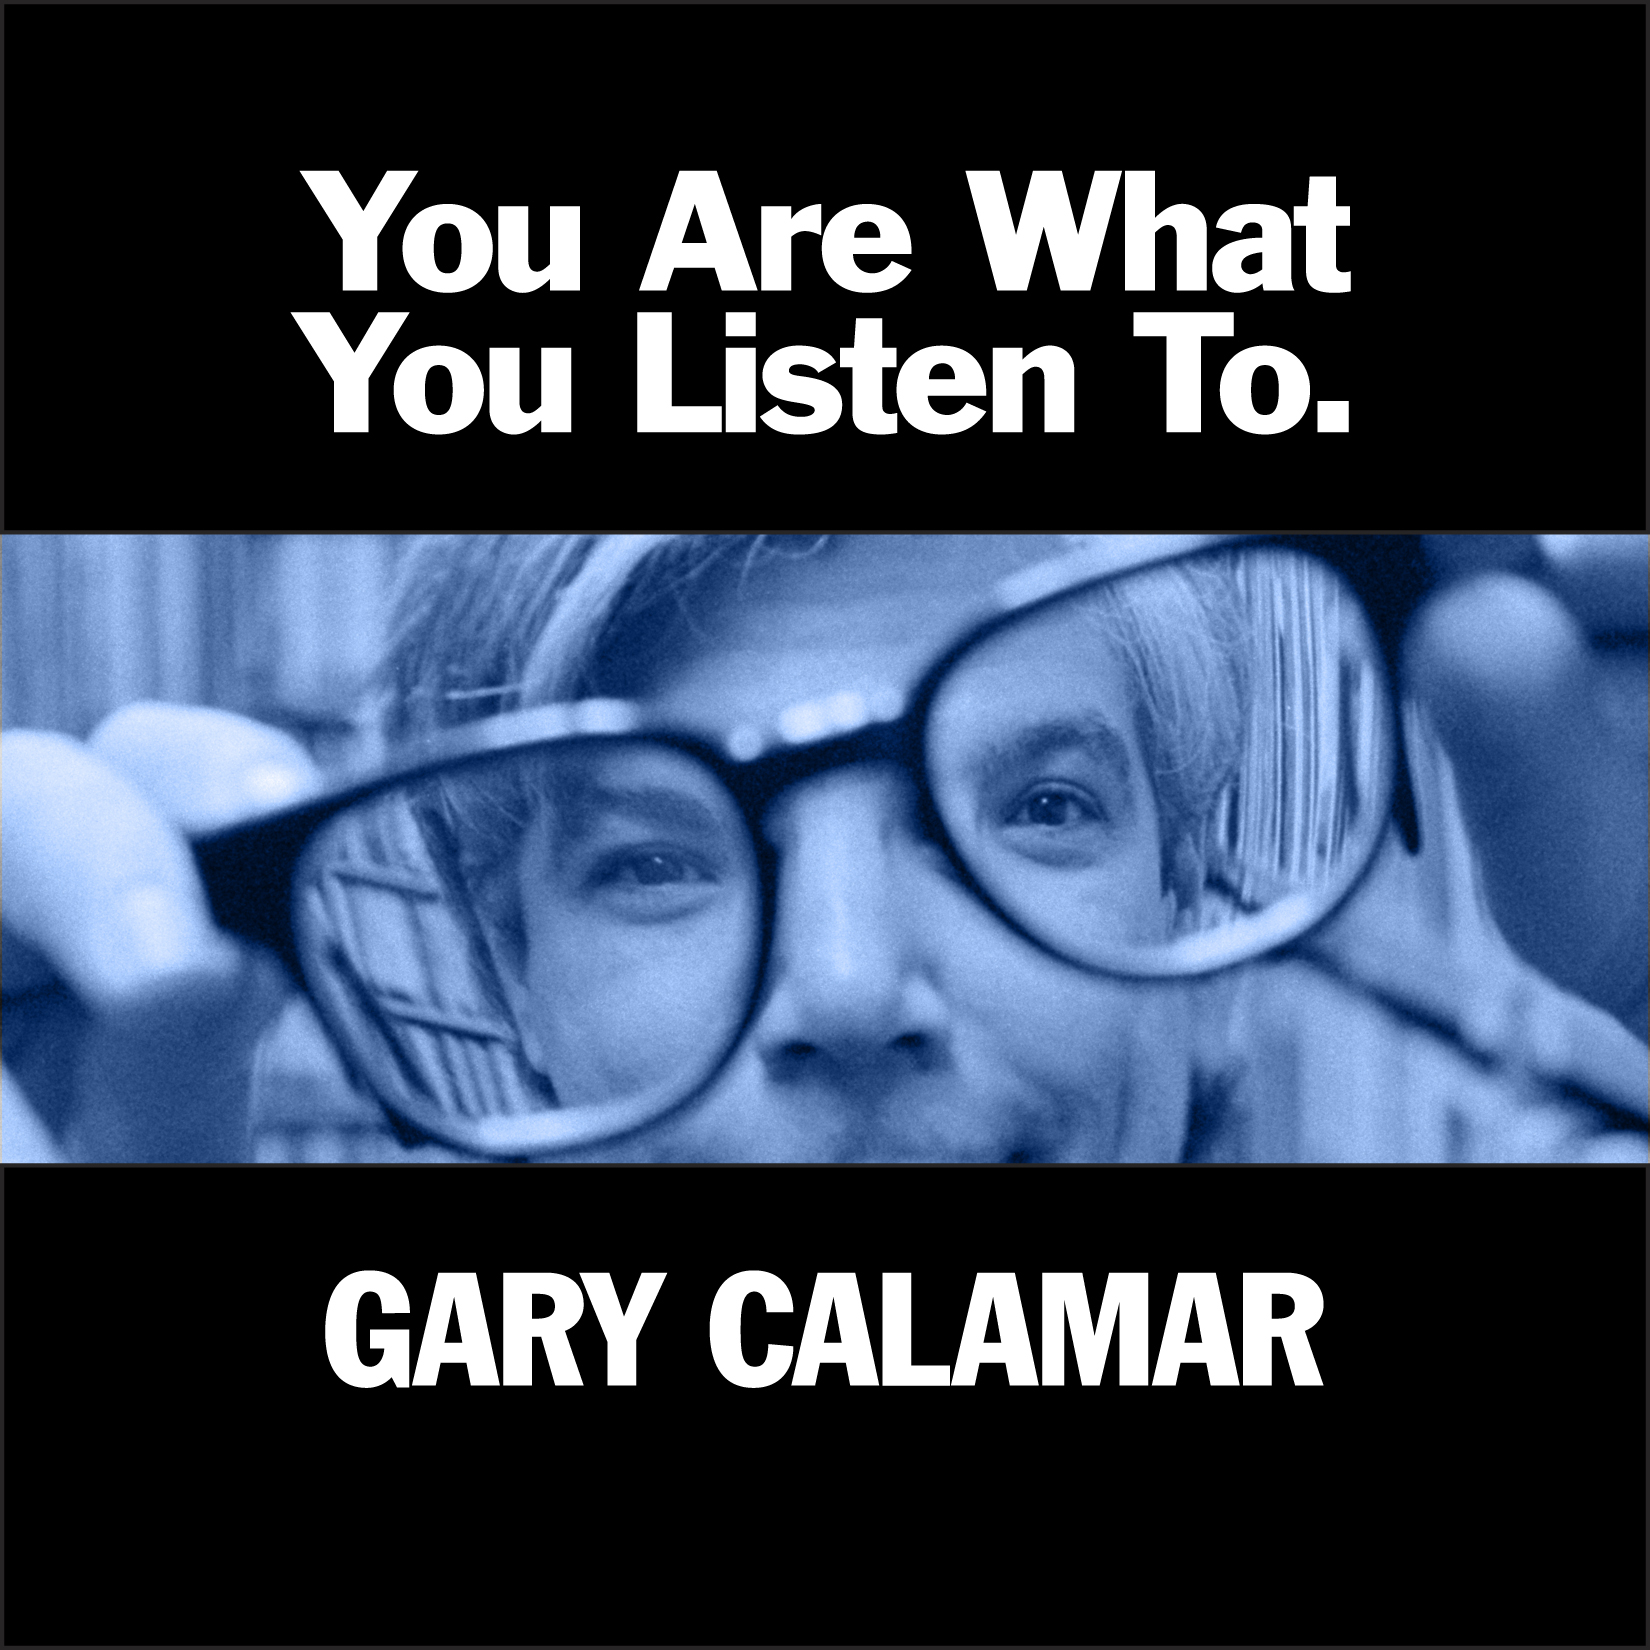 SPIN.COM PREMIERES GARY CALAMAR'S NEW VIDEO